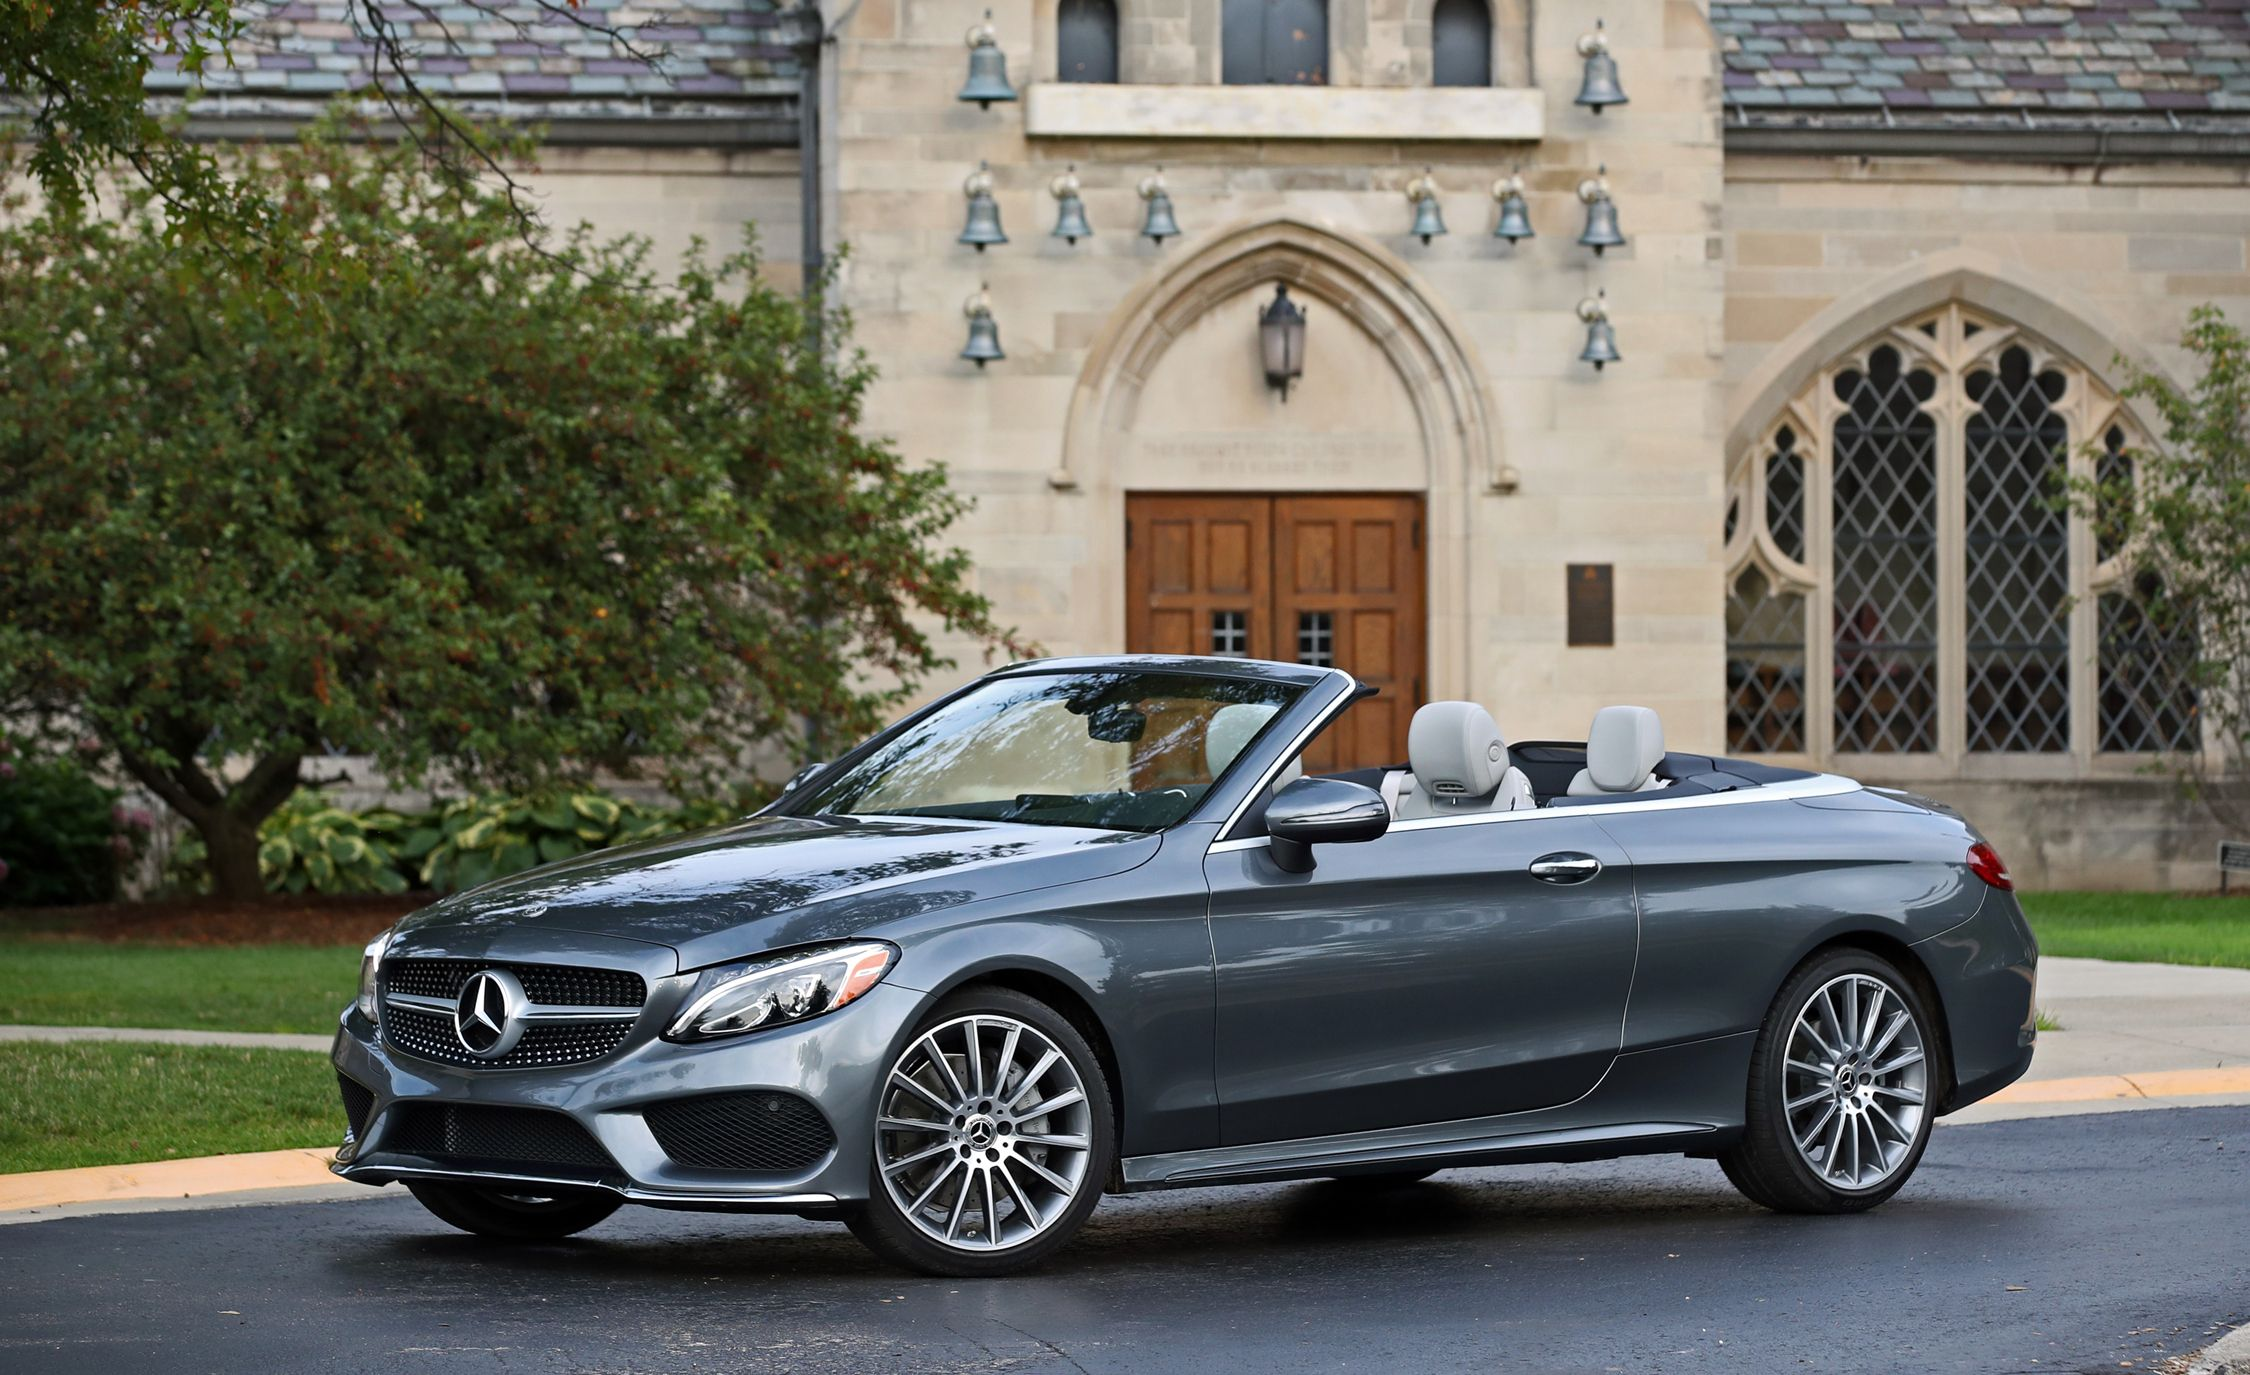 2018 mercedes benz c class coupe and cabriolet exterior. Black Bedroom Furniture Sets. Home Design Ideas